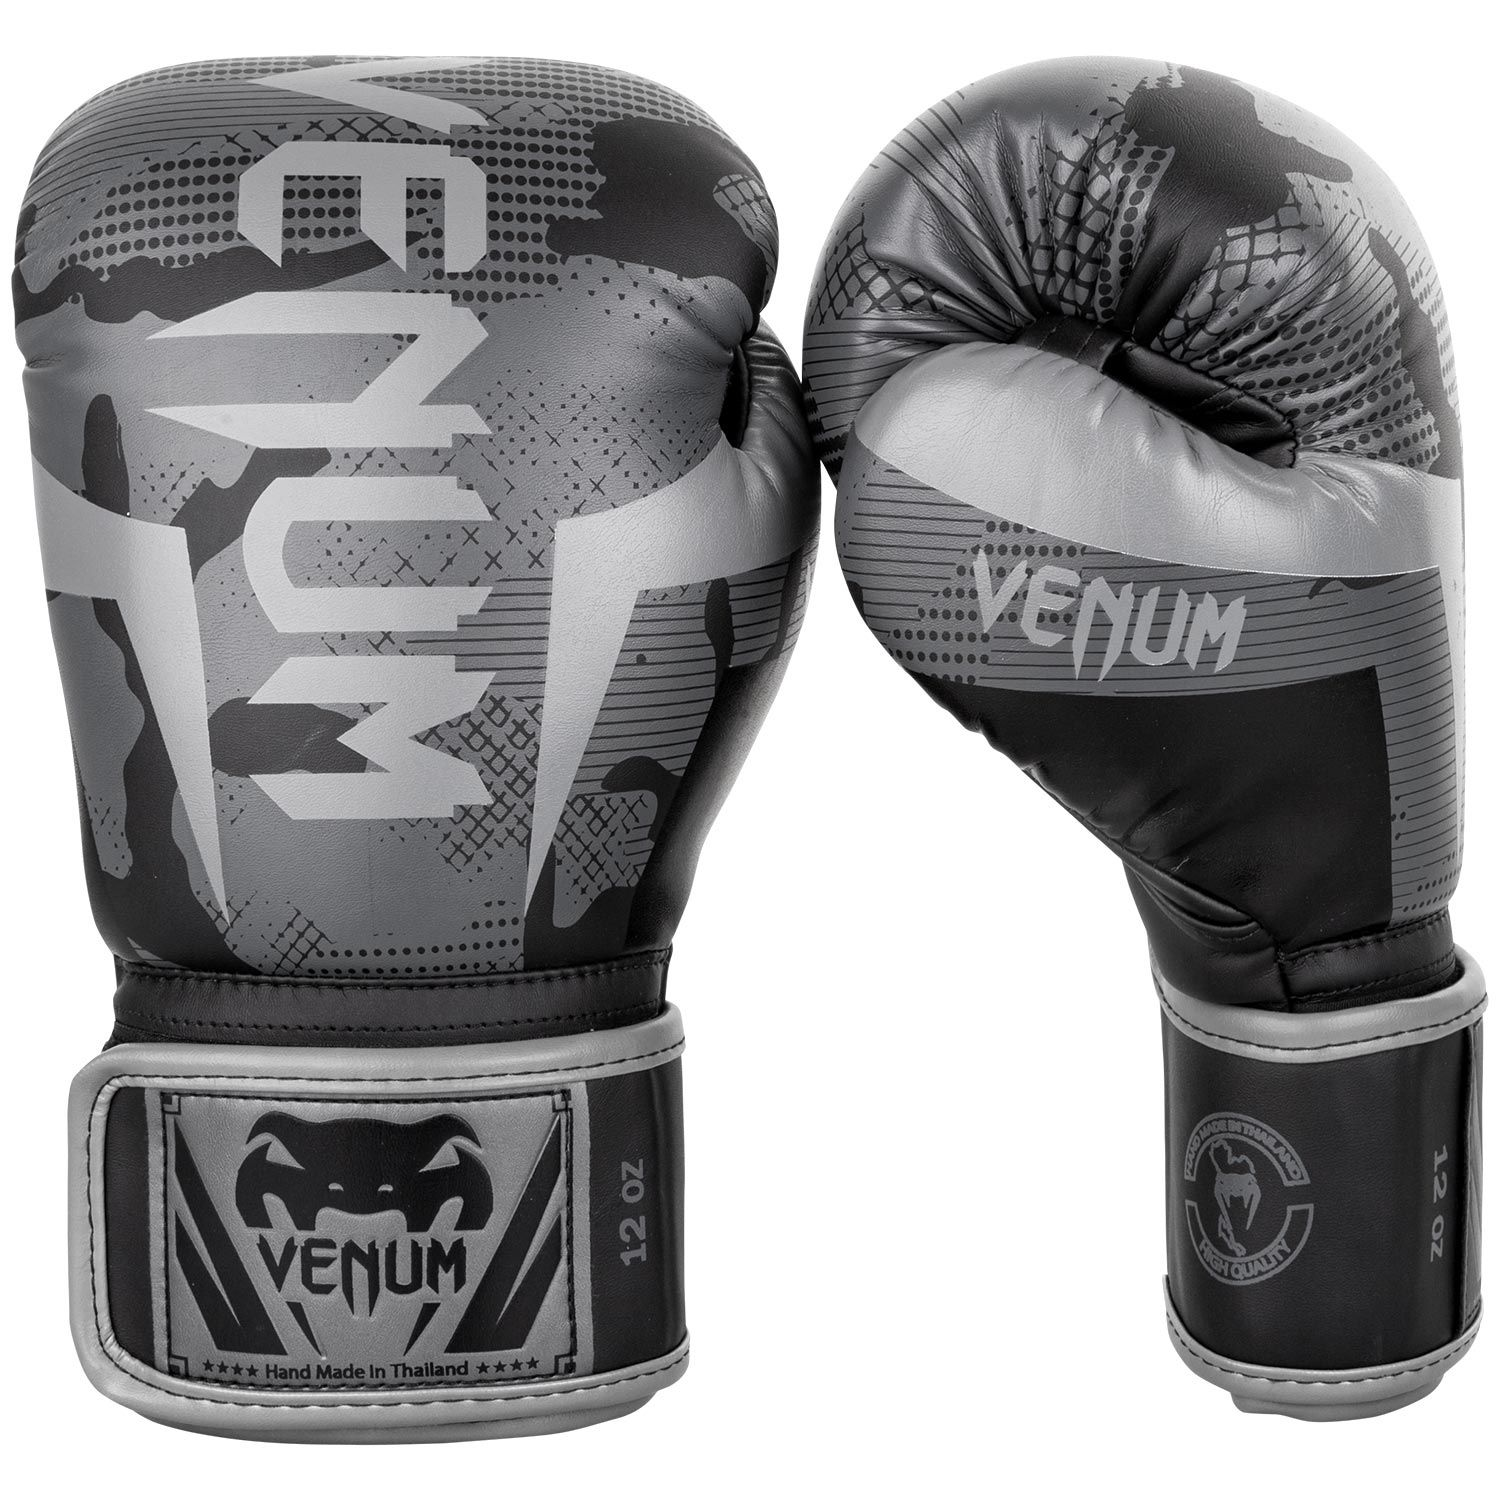 Venum Elite Boxing Gloves - Black/Dark camo